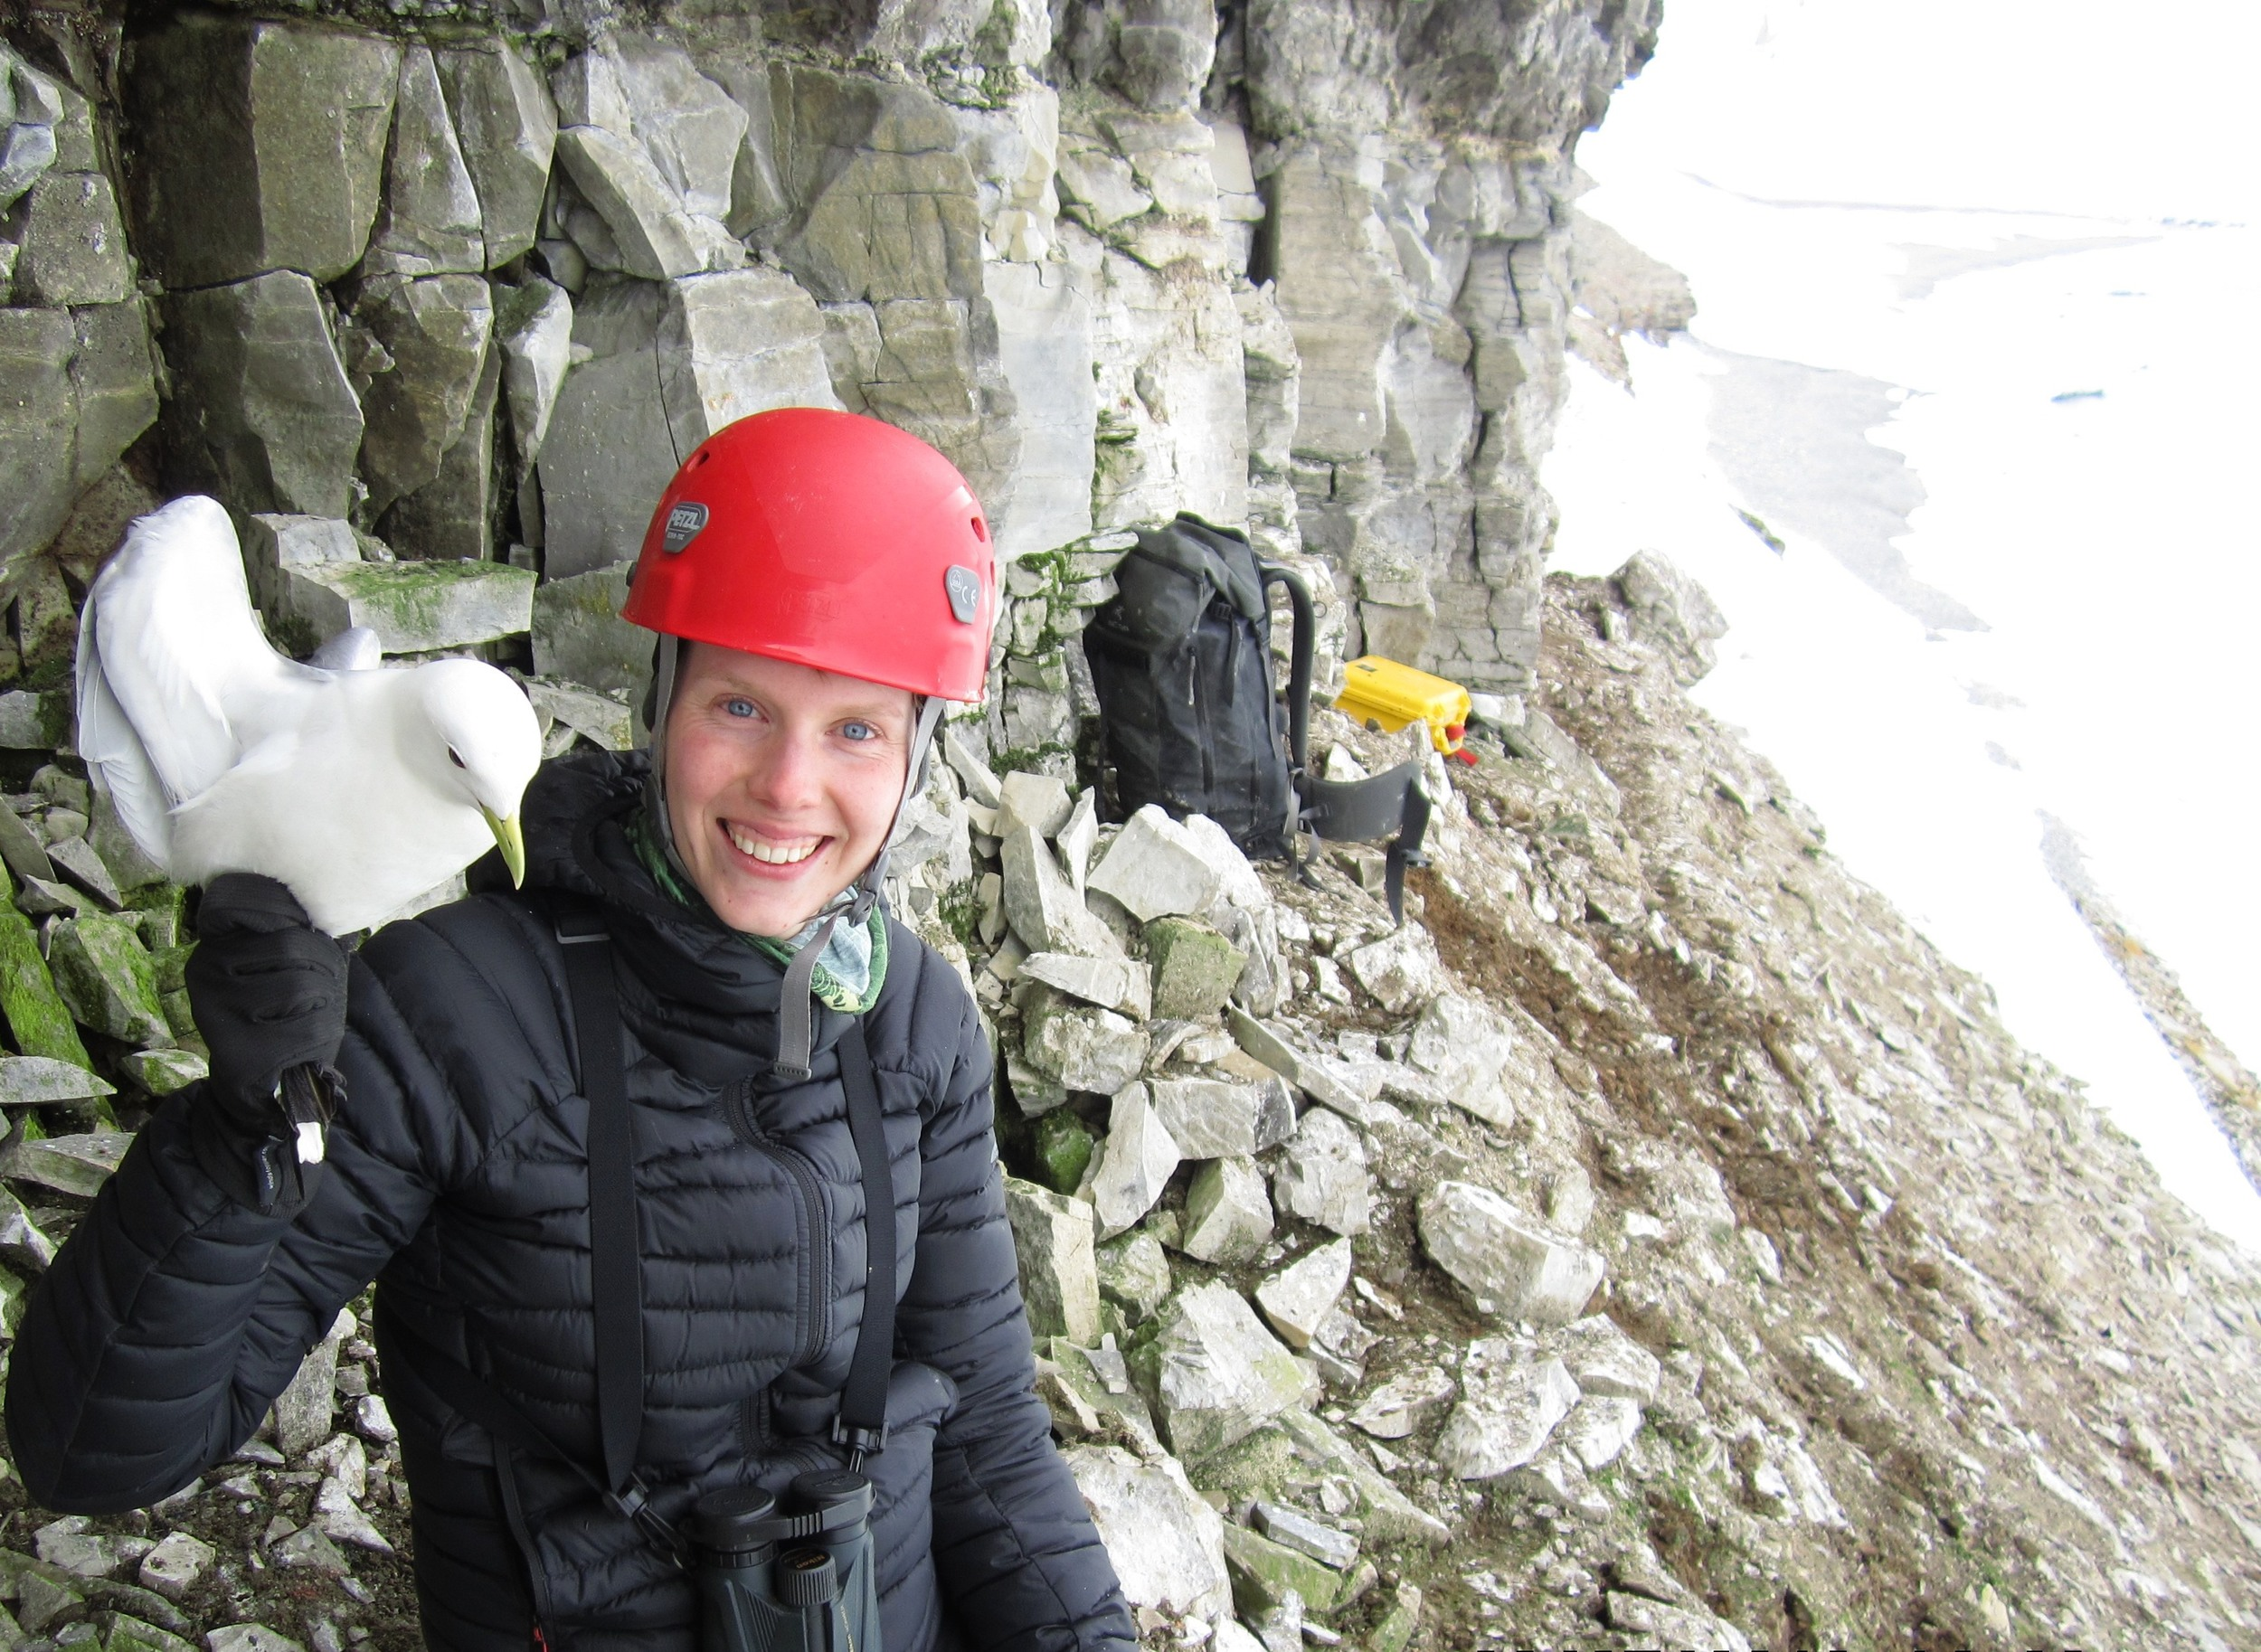 Nora Spencer has a B.Sc from Dalhousie University and a M.Sc. in Biology from Acadia University. She began working with passerines and transitioned to seabird conservation for her graduate work. Her master's thesis investigated the  annual movements and critical winter habitat of the endangered ivory gull ( Pagophila eburnea ) in the Canadian High Arctic .  Nora's research interests include examining the spatial ecology and behaviour of animals in relation to their conservation.